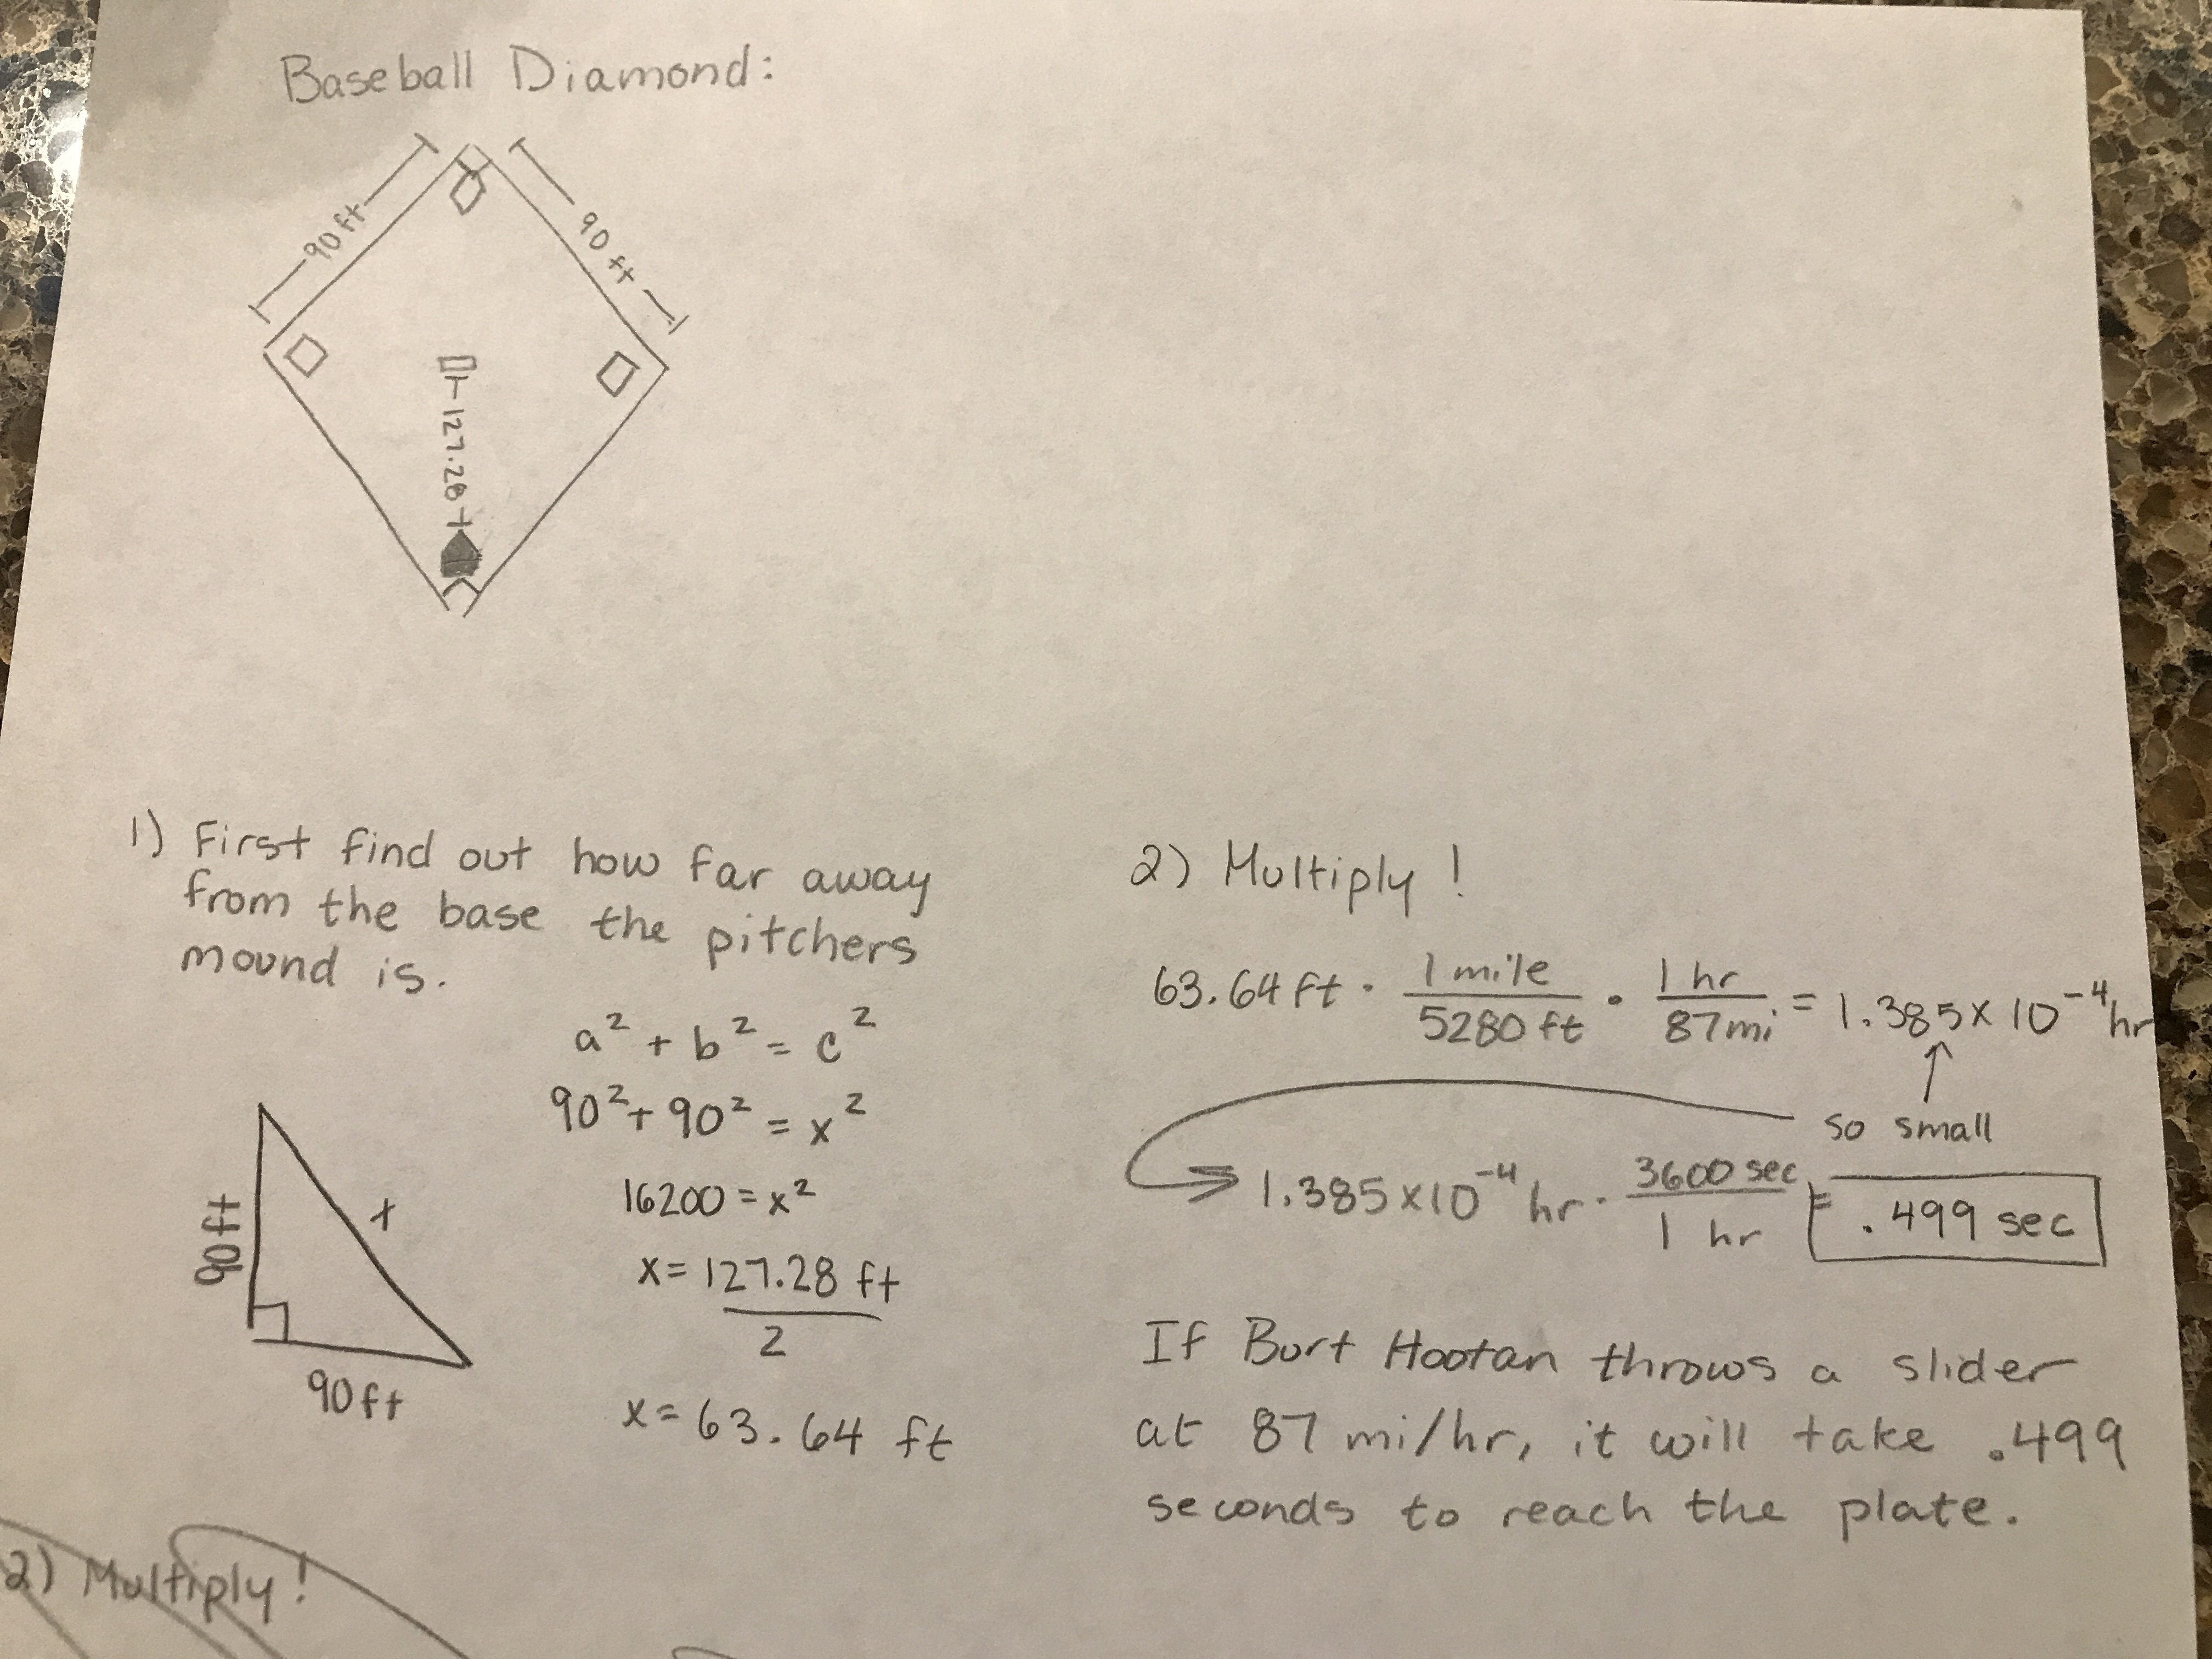 The distance between bases on a baseball diamond (a perfect square ...